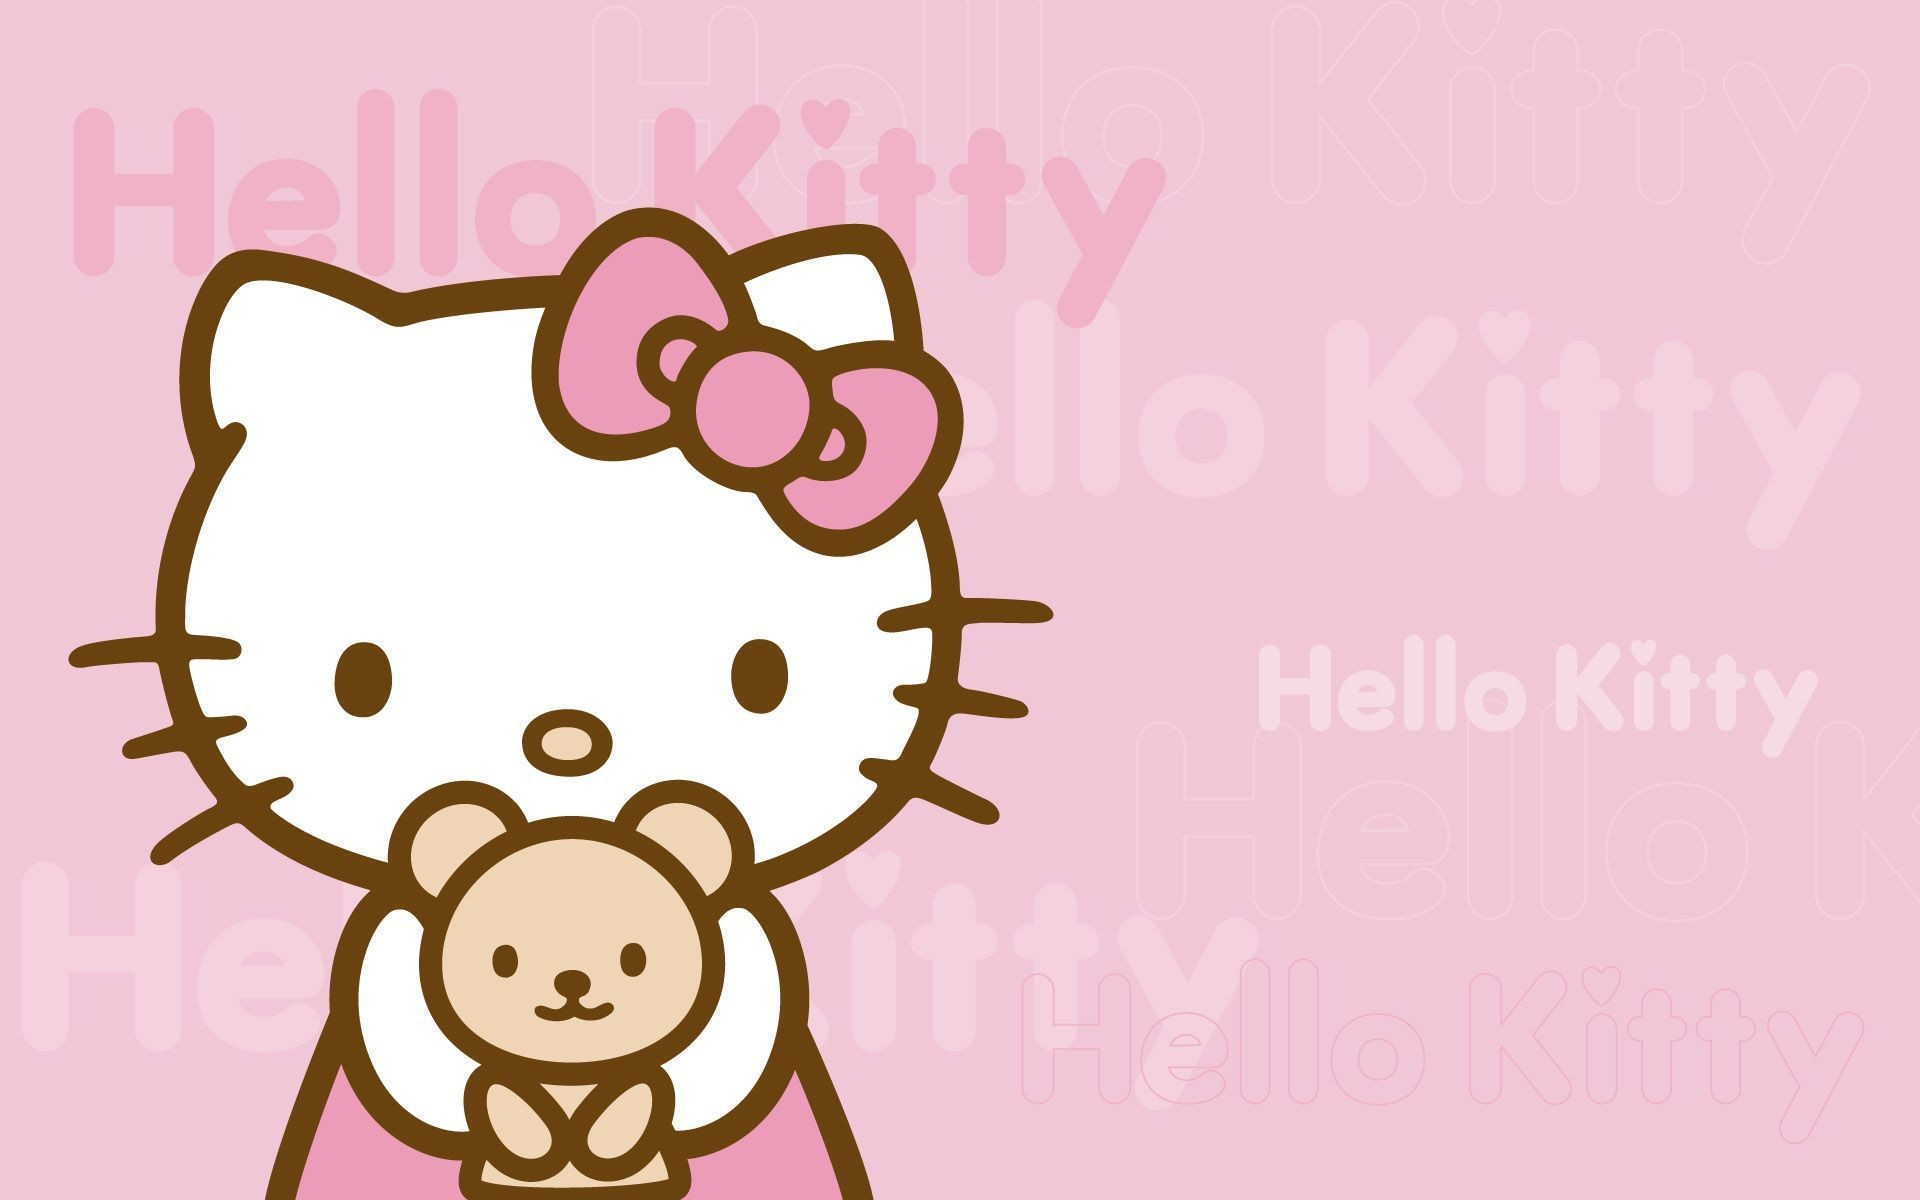 1920x1200 Hello Kitty Desktop Backgrounds Wallpapers - Wallpaper Cave